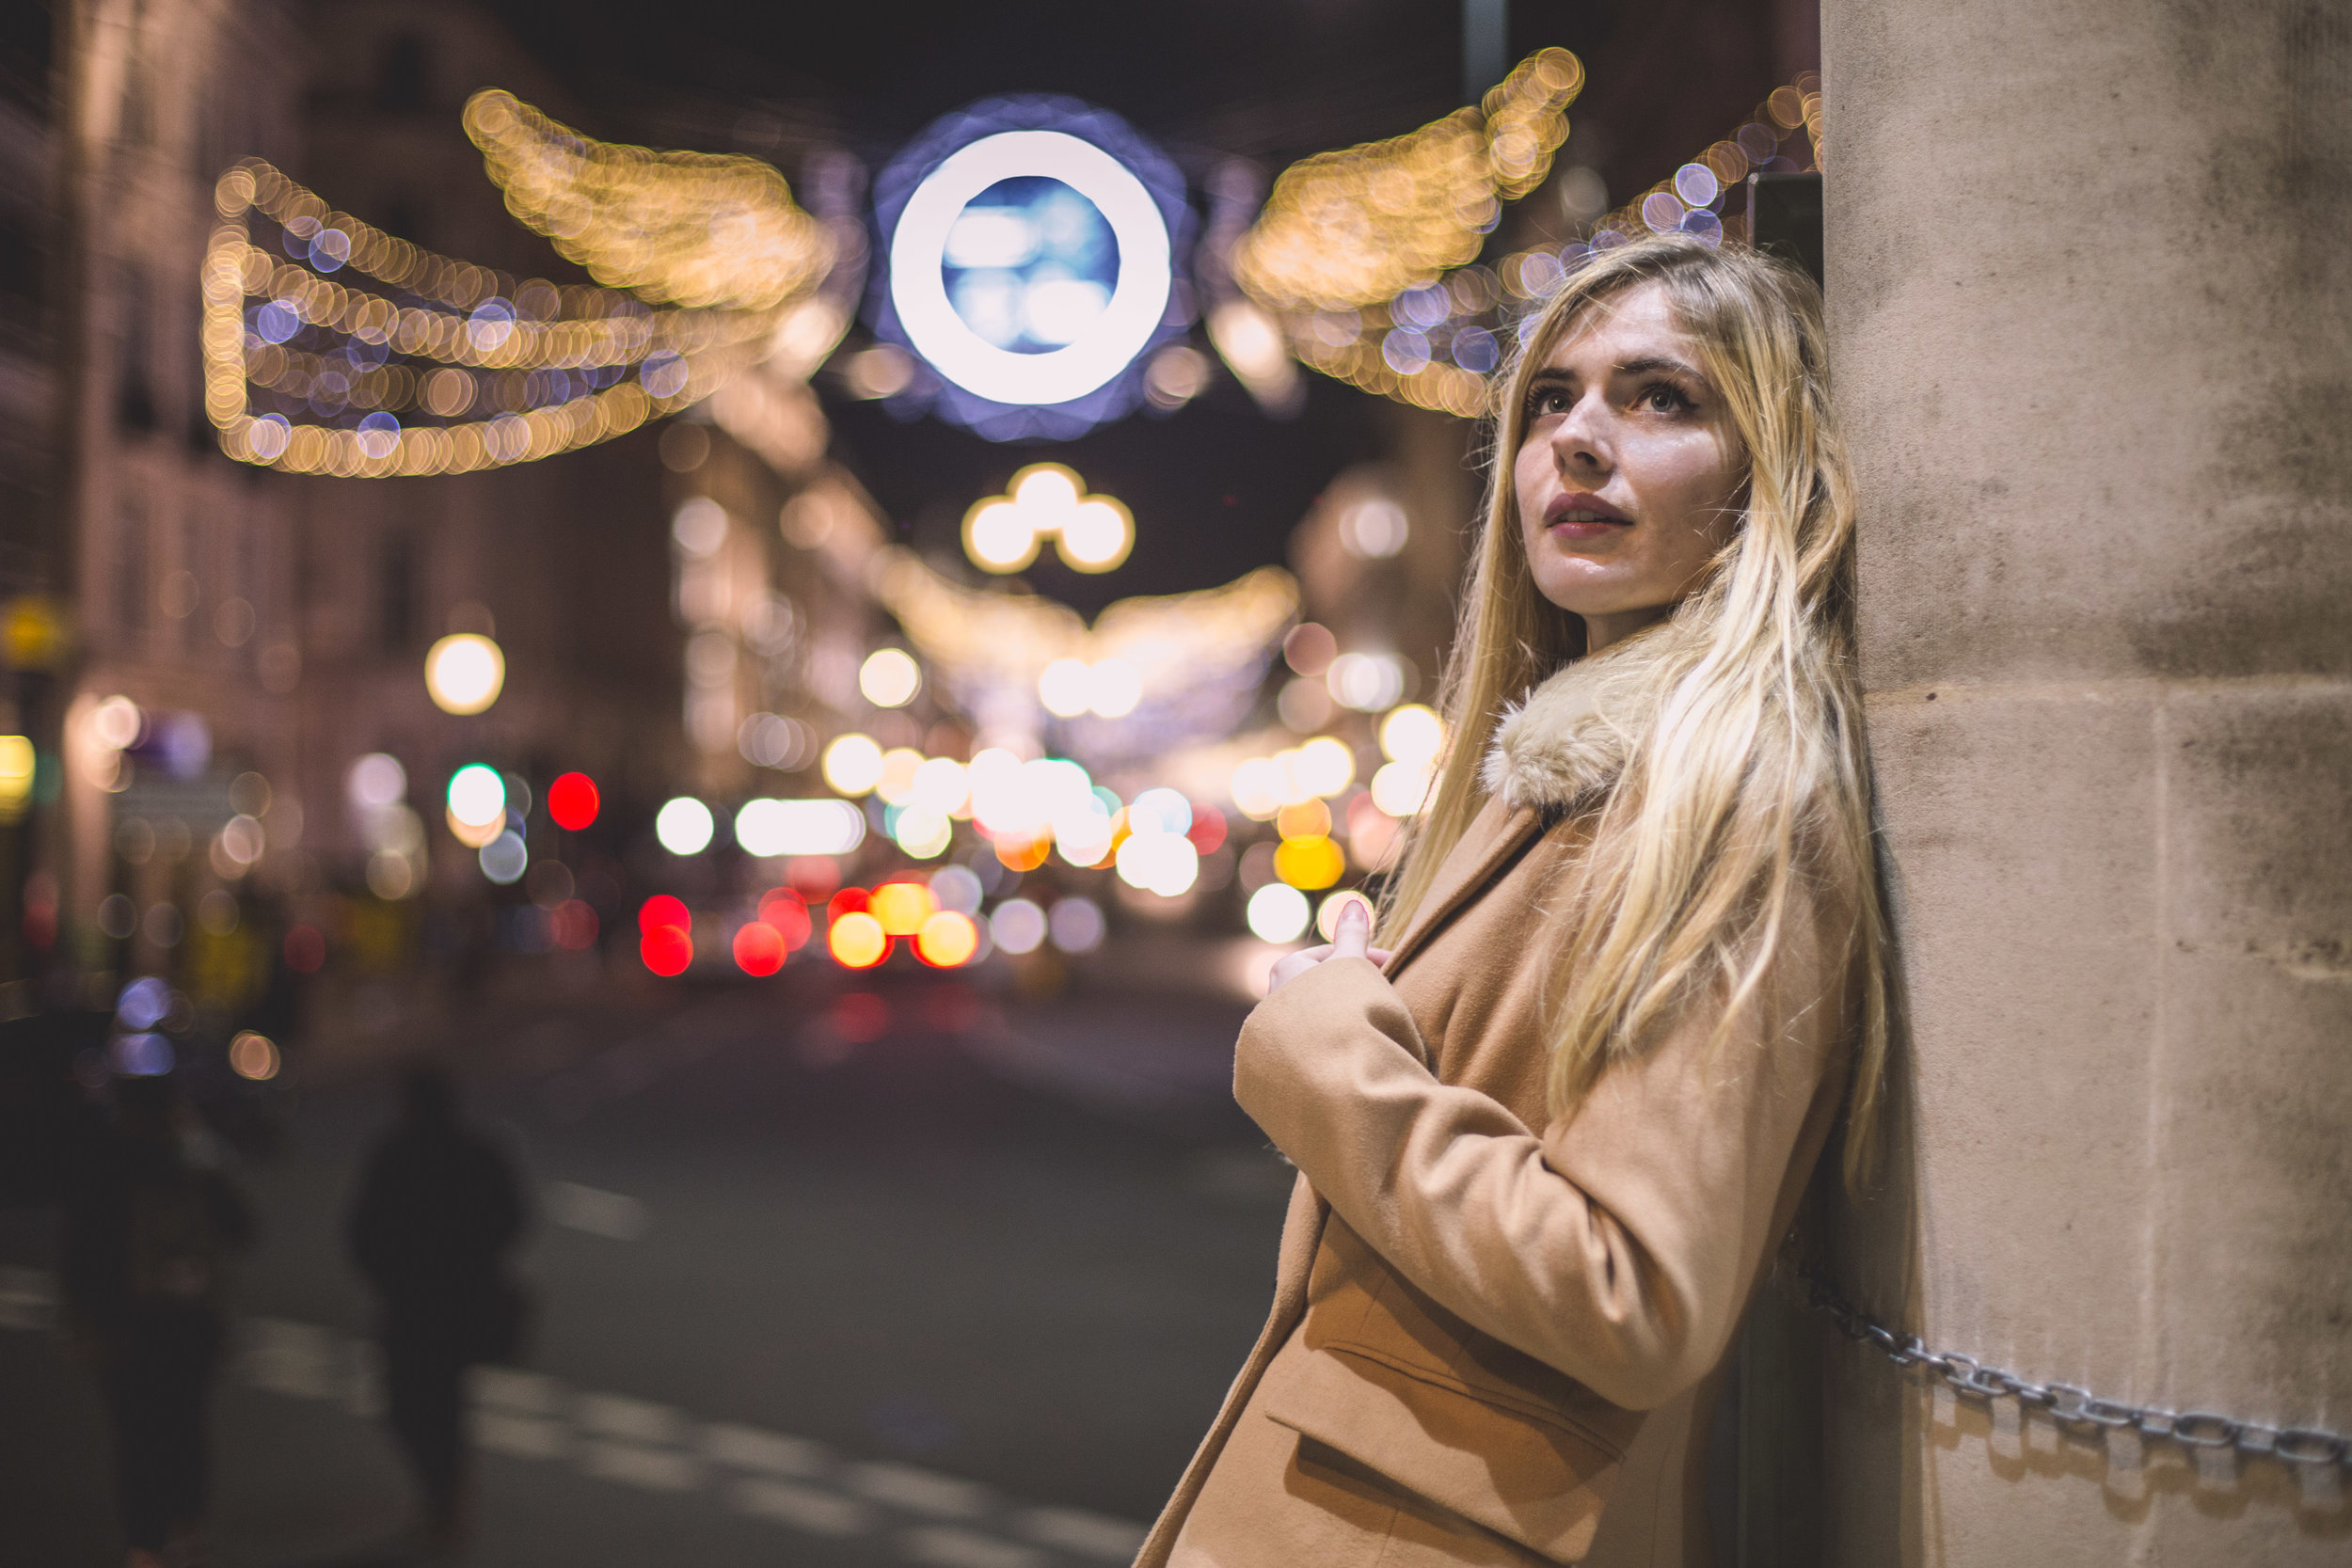 Bokeh Regents Street Diana von R Christmas Lights